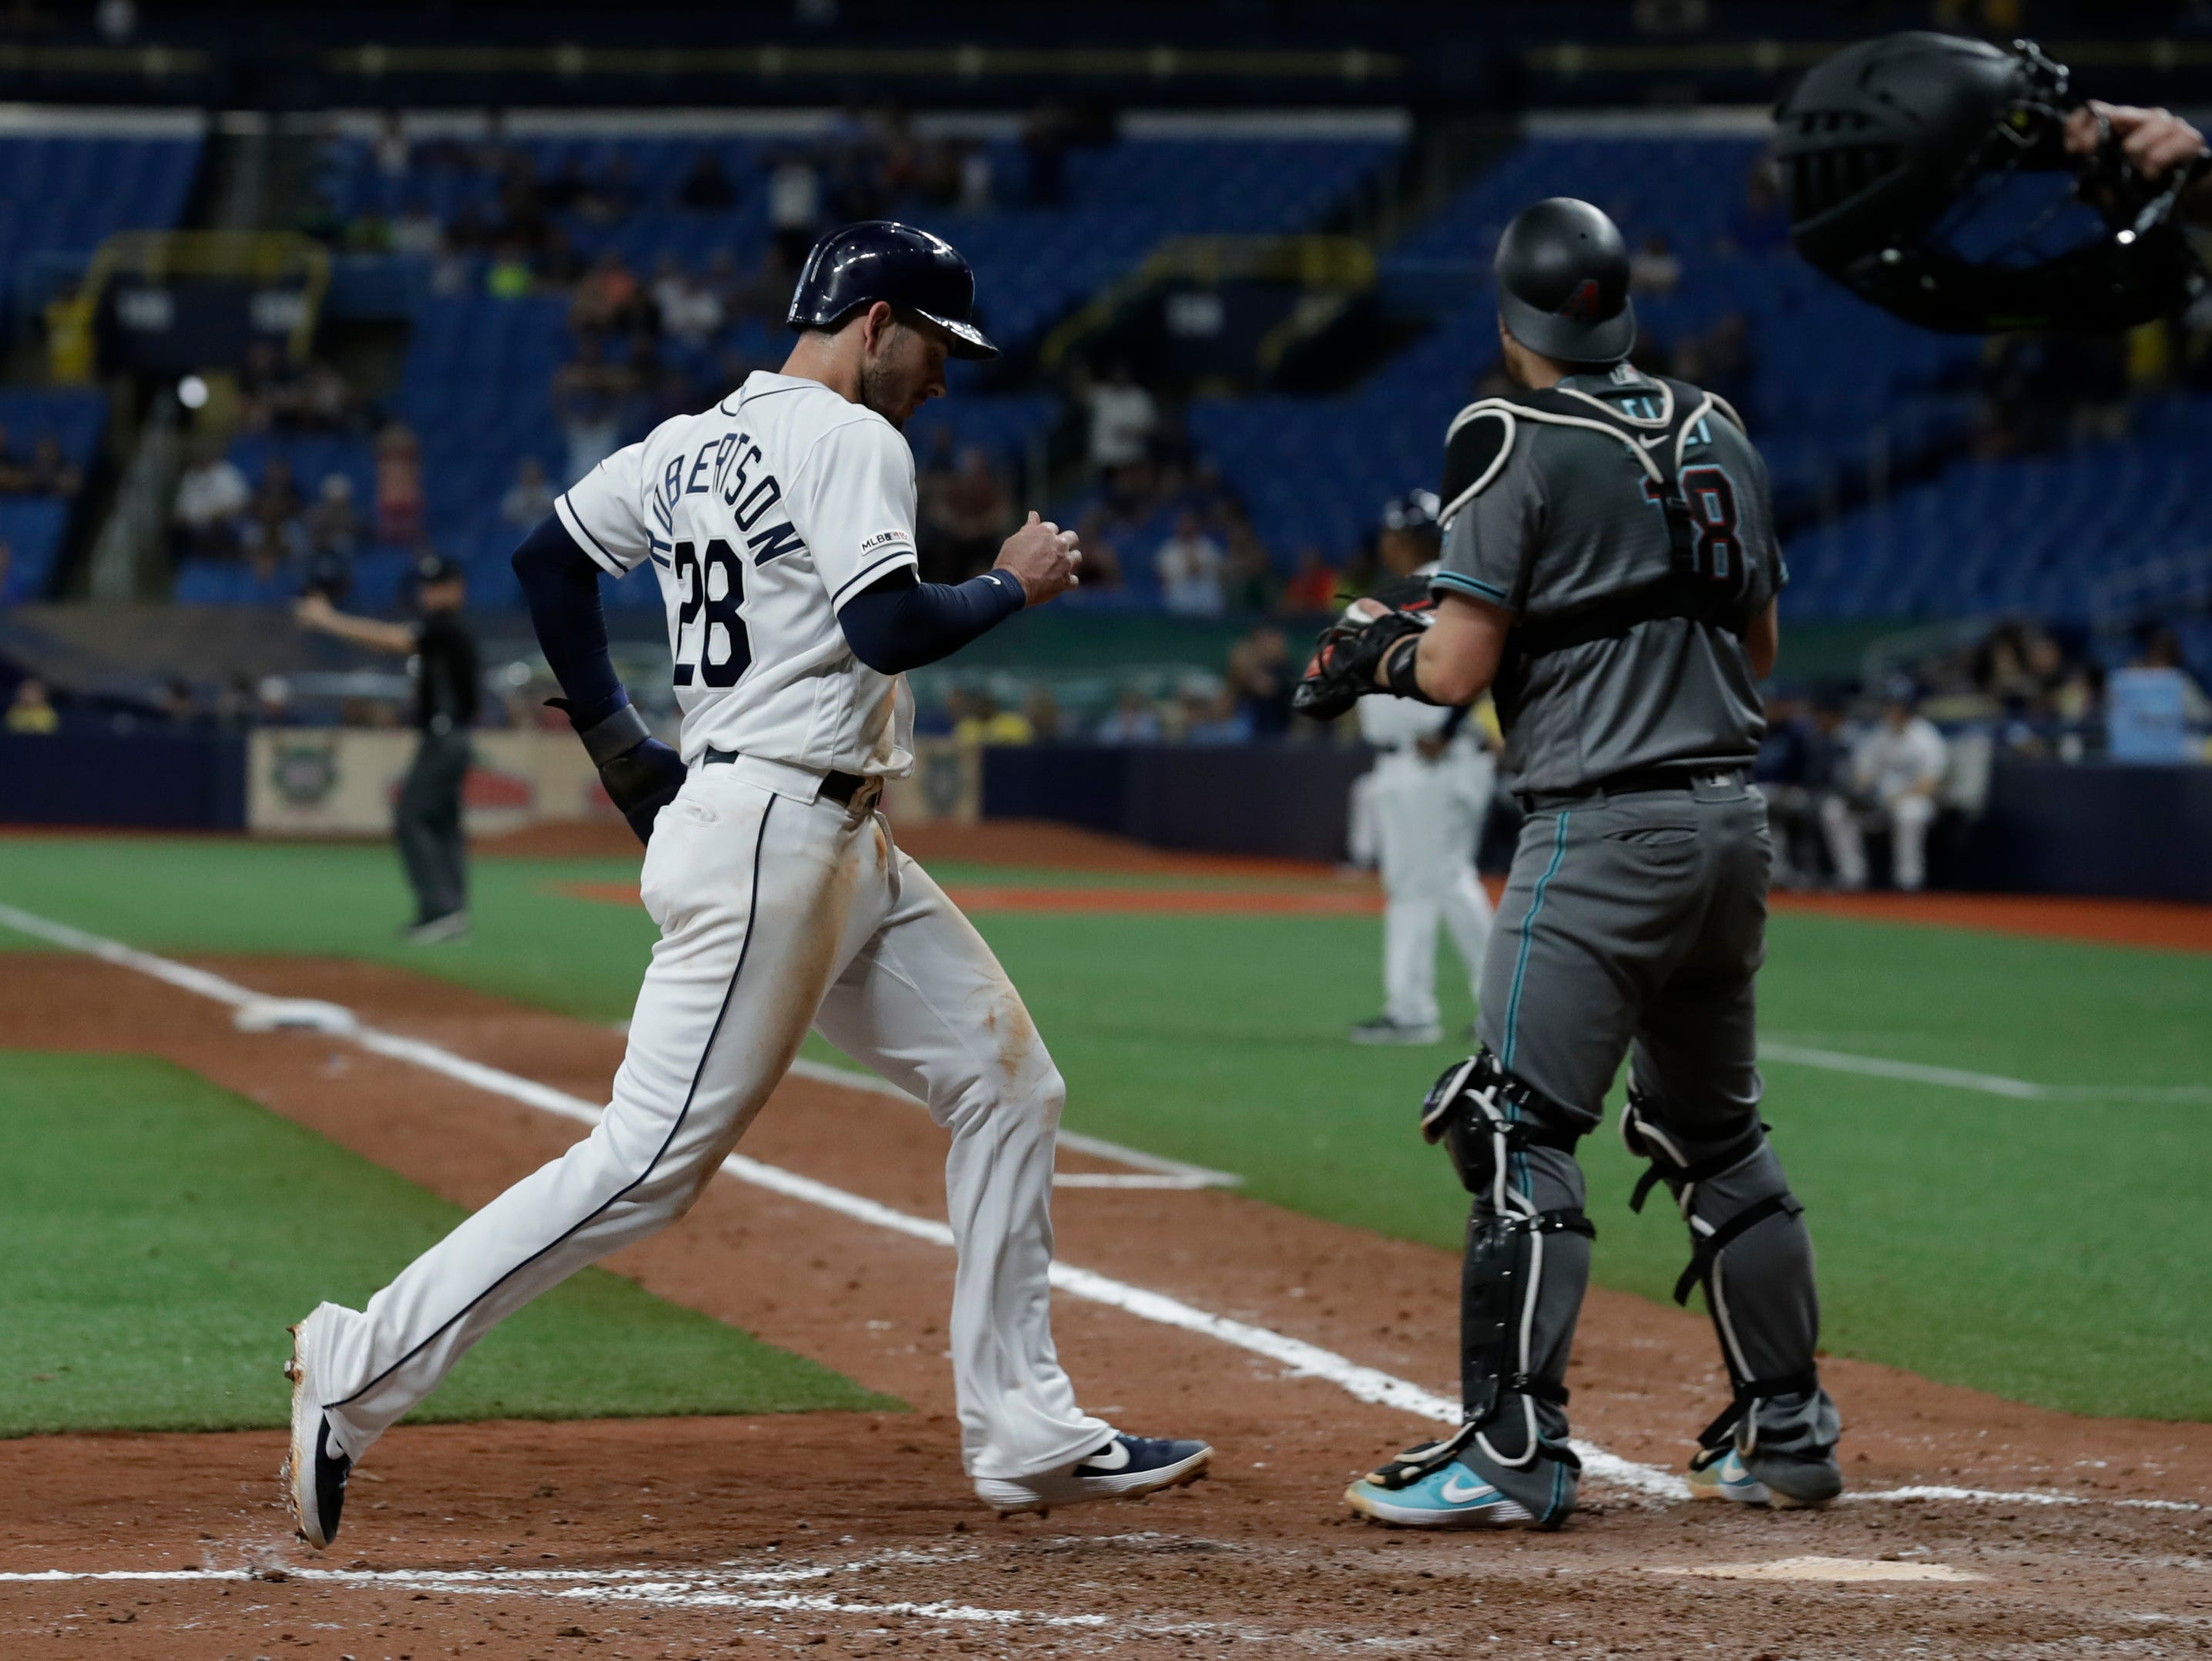 Tampa Bay Rays' Daniel Robertson (28) scores behind Arizona Diamondbacks catcher Carson Kelly on an RBI double by Mike Zunino during the seventh inning of a baseball game Tuesday, May 7, 2019, in St. Petersburg, Fla. (AP Photo/Chris O'Meara)